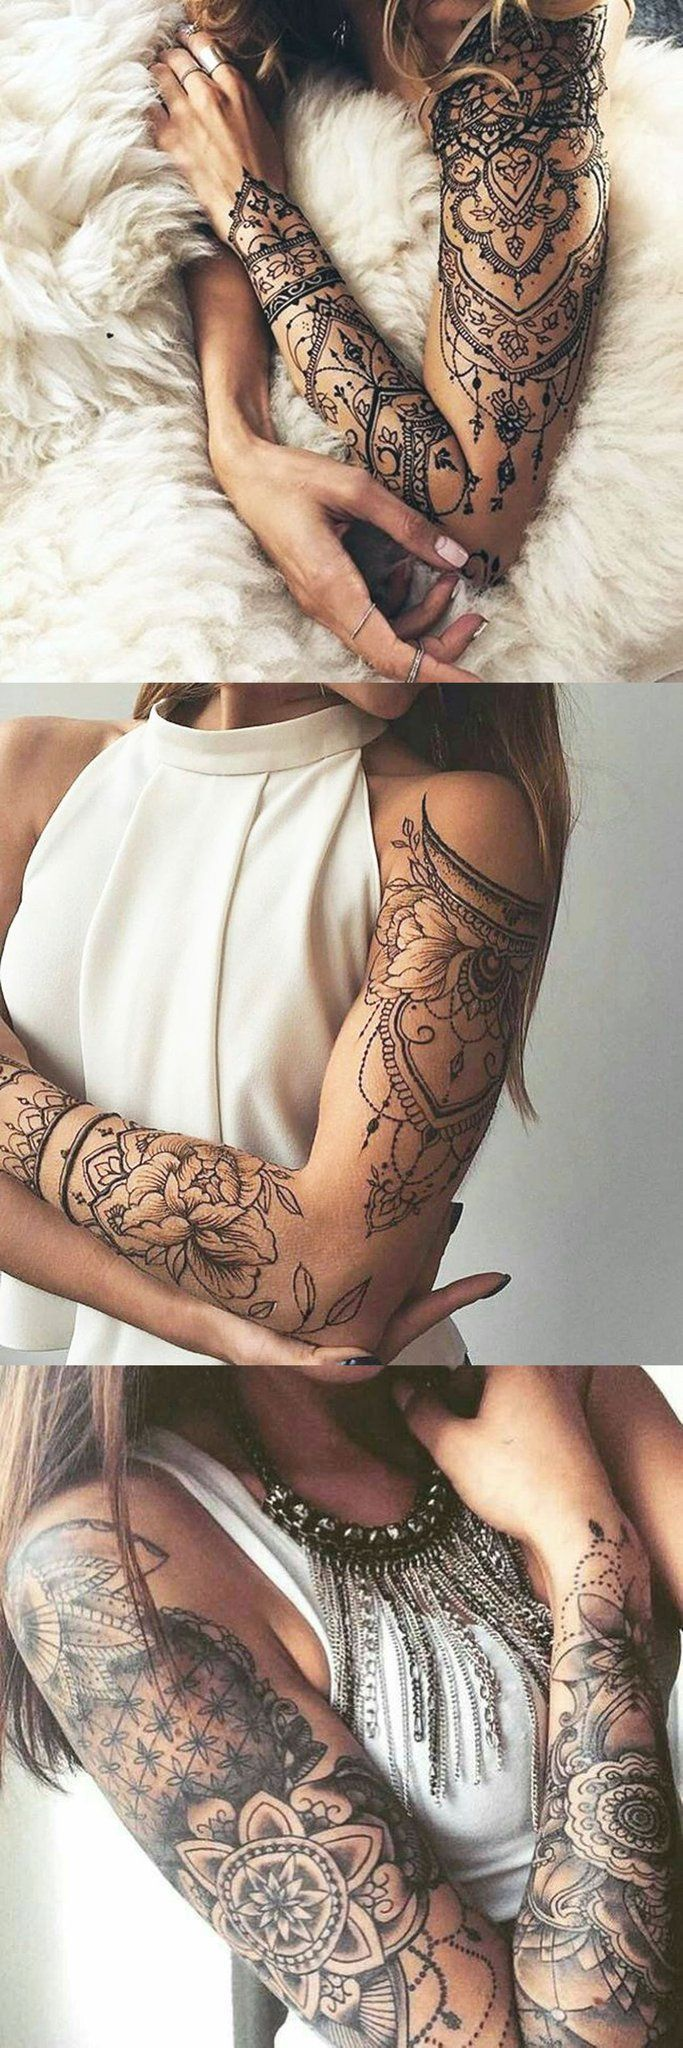 5 Reasons Why You Should Get a Tattoo